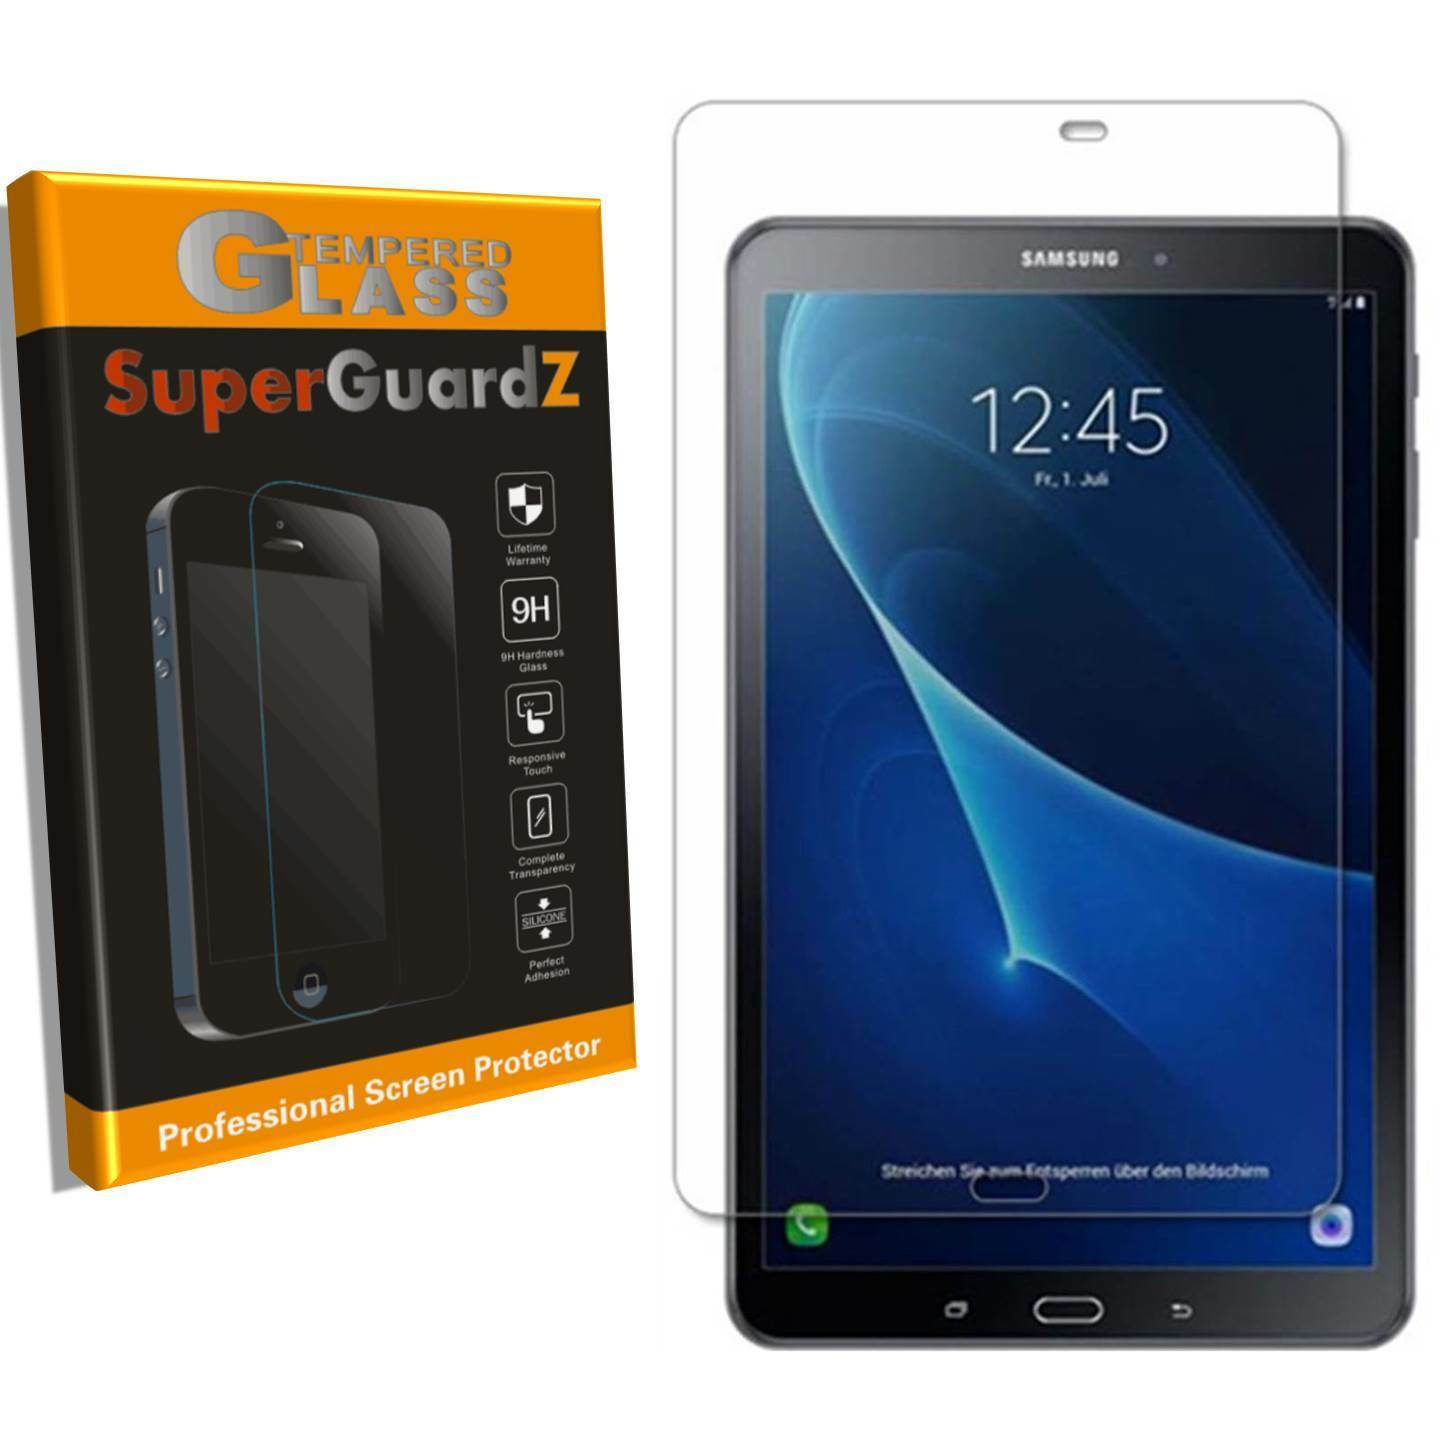 Samsung Galaxy Tab A 10.1 (2016) [2-PACK] Tempered Glass Screen Protector Case